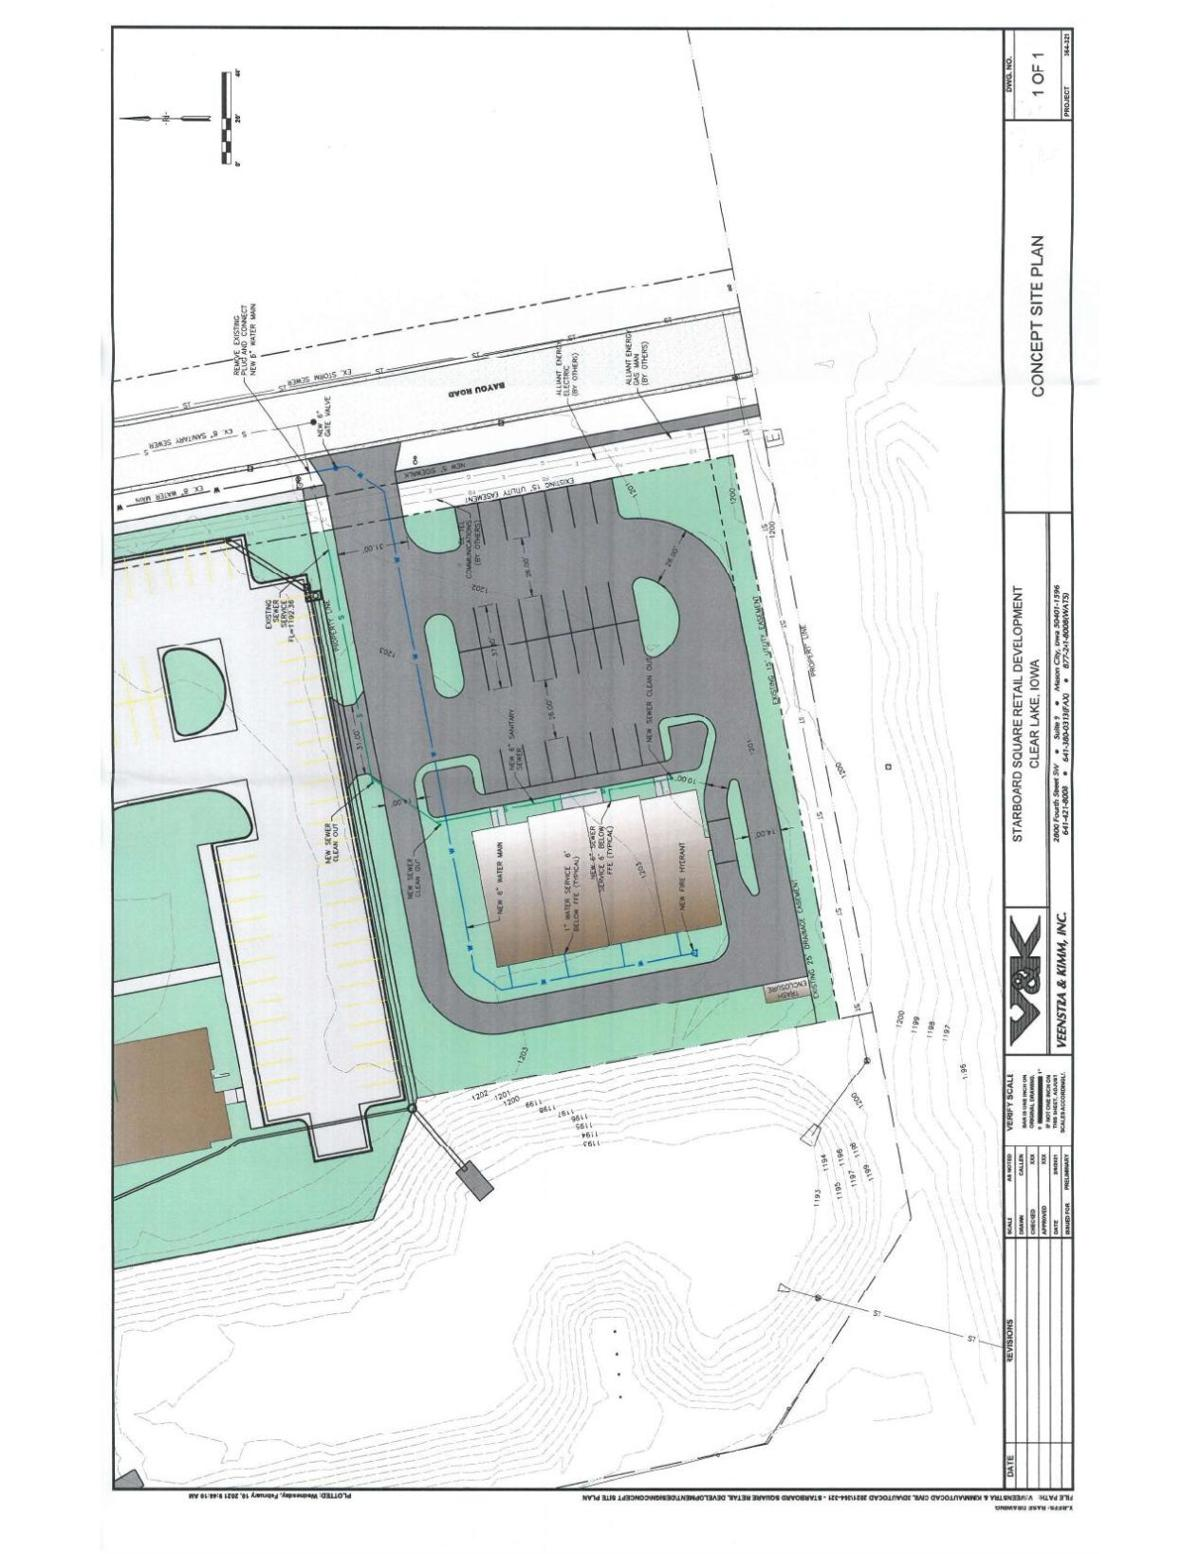 Concept Site Plan - Starboard Square Retail Development in Clear Lake